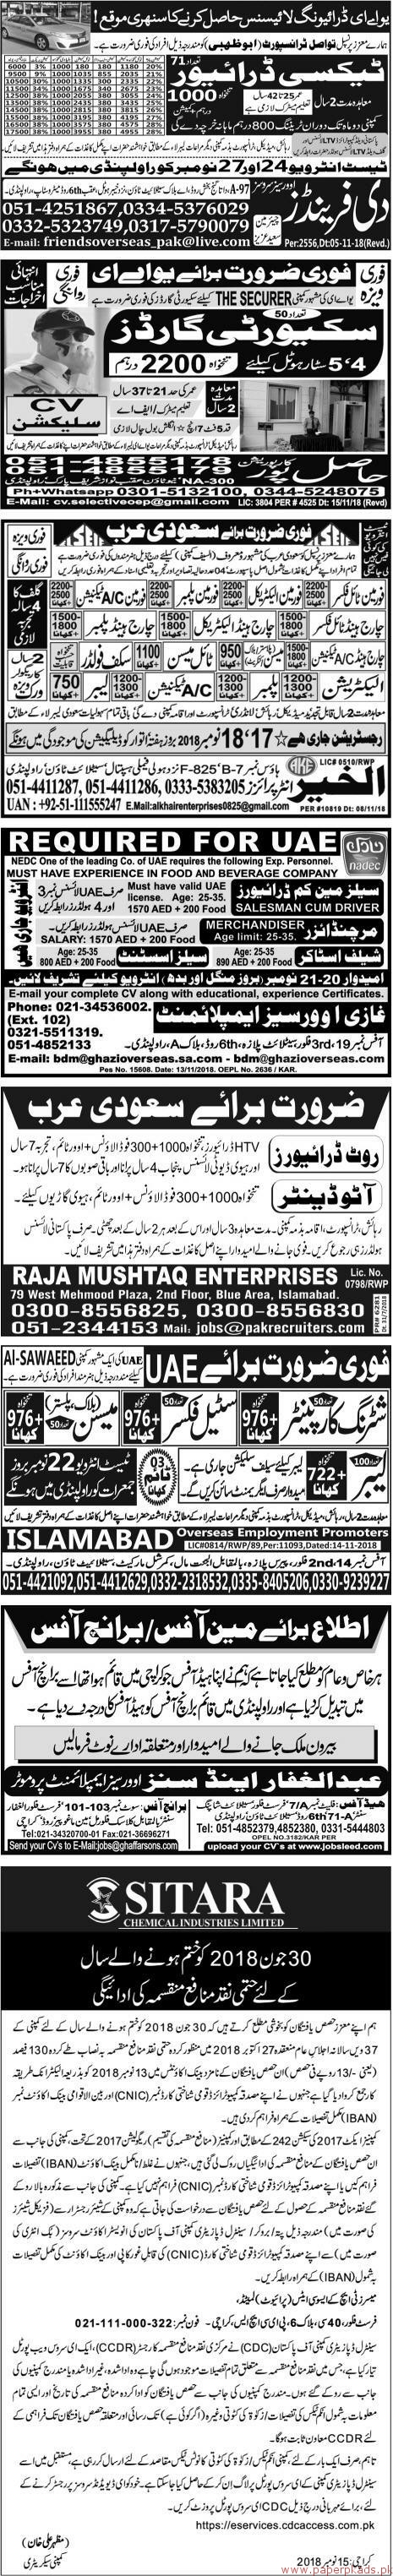 Multiple Jobs - Page 1 - Express Newspaper Jobs 16 November 2018